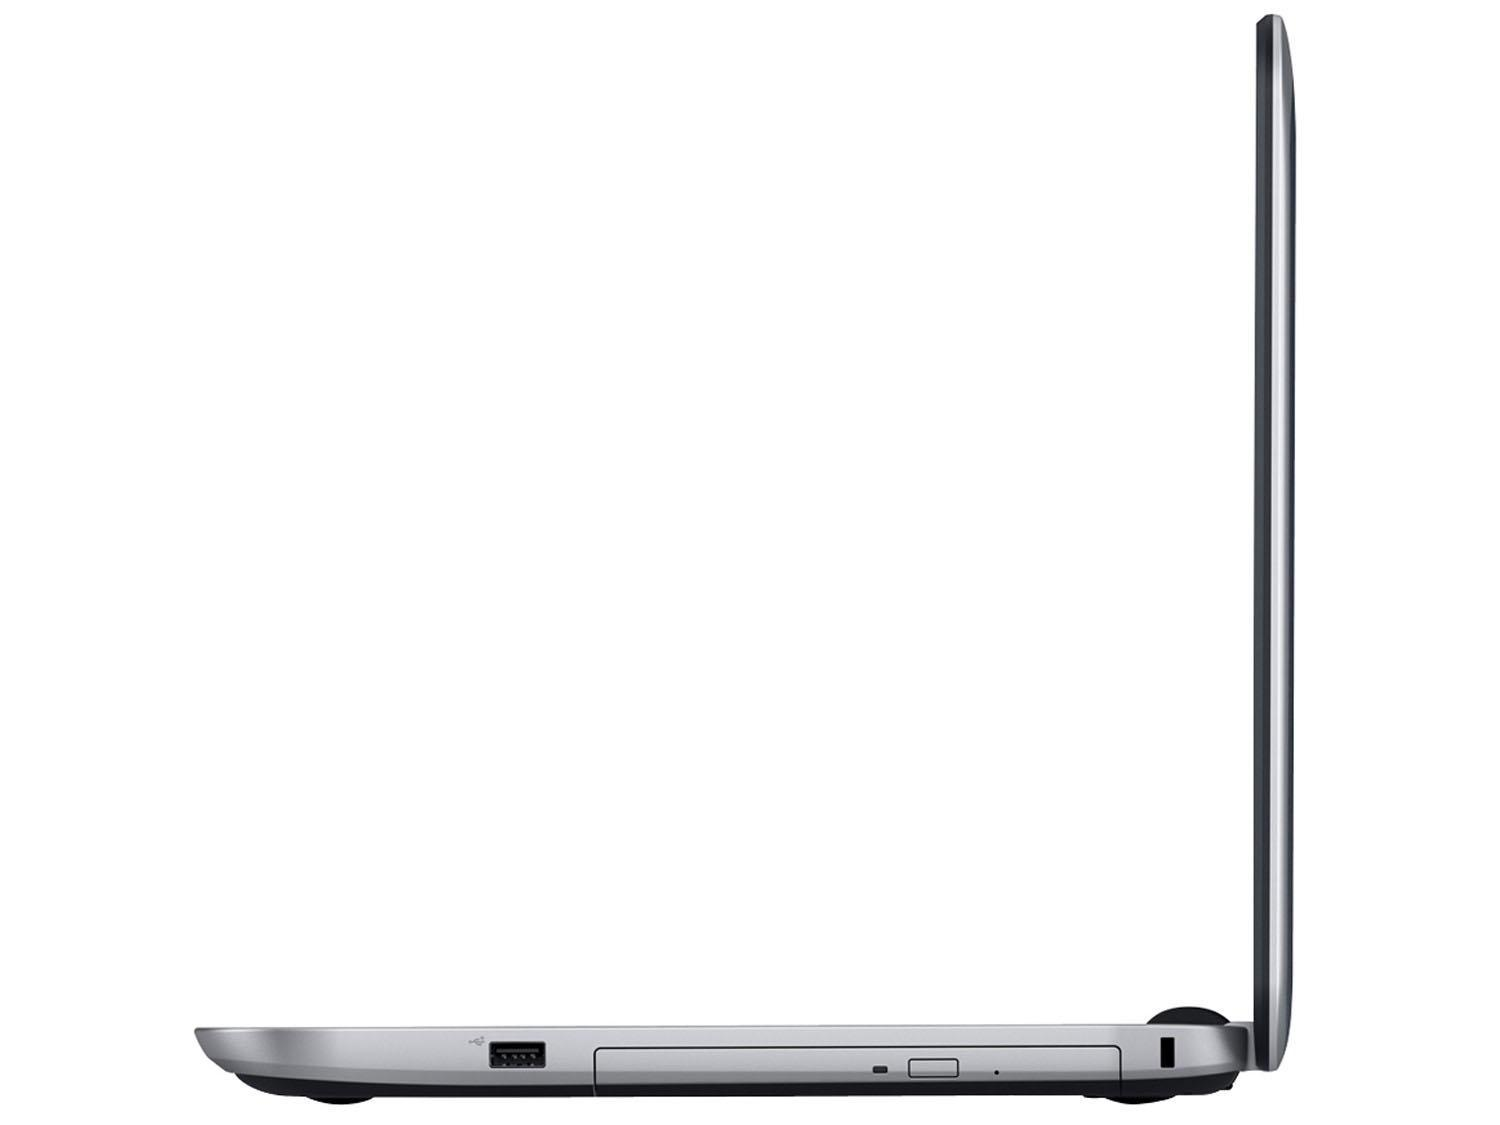 Dell Inspiron 15R-5537-A10 - Tela 15.6 HD LED, In